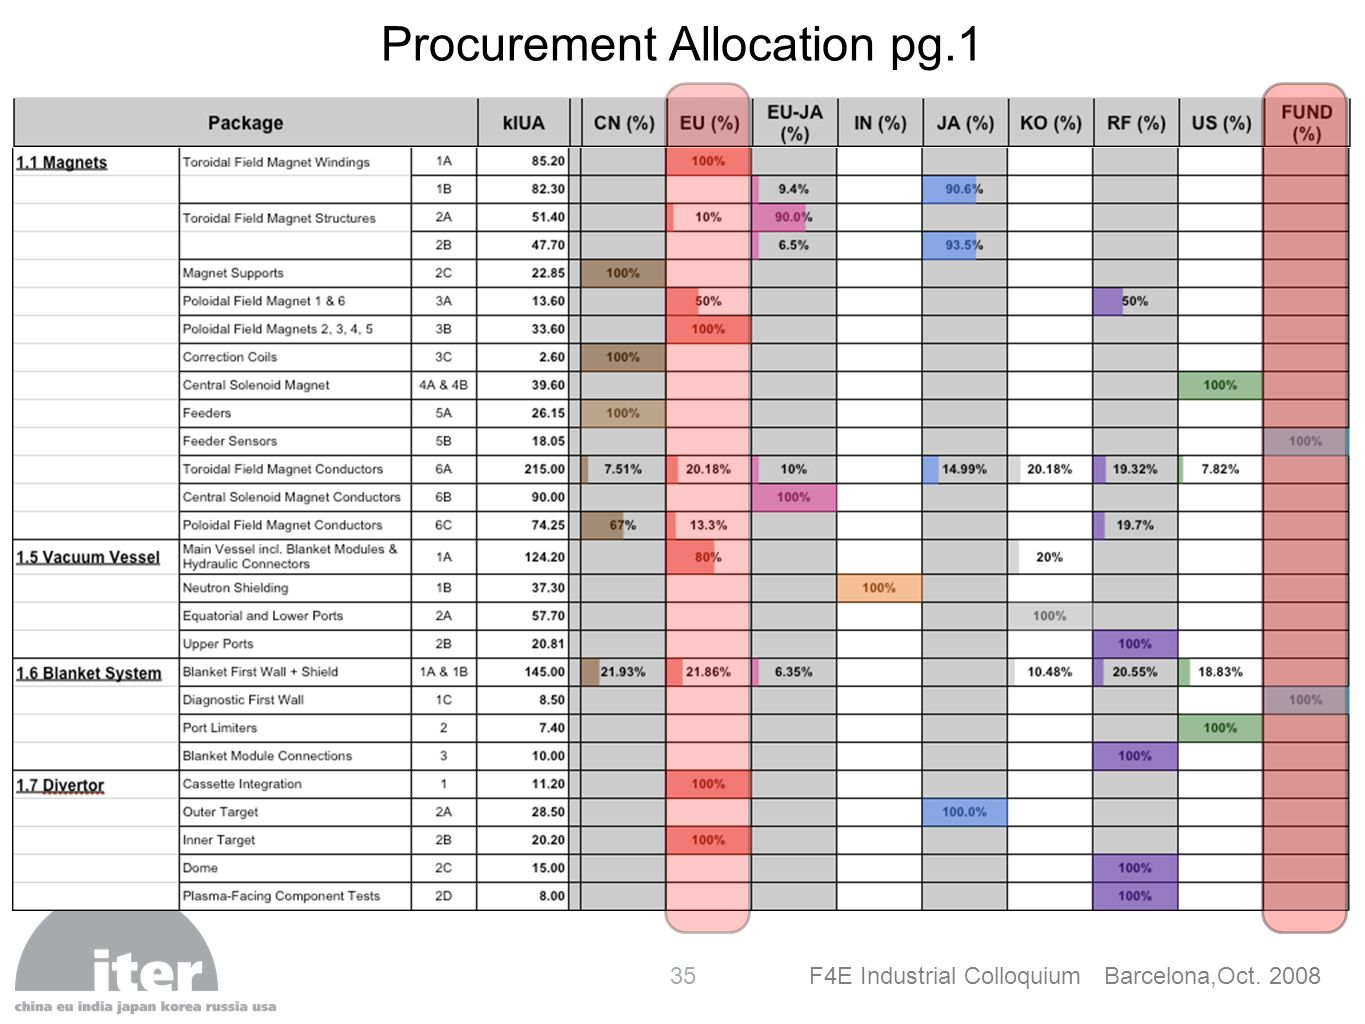 Procurement Allocation pg.1